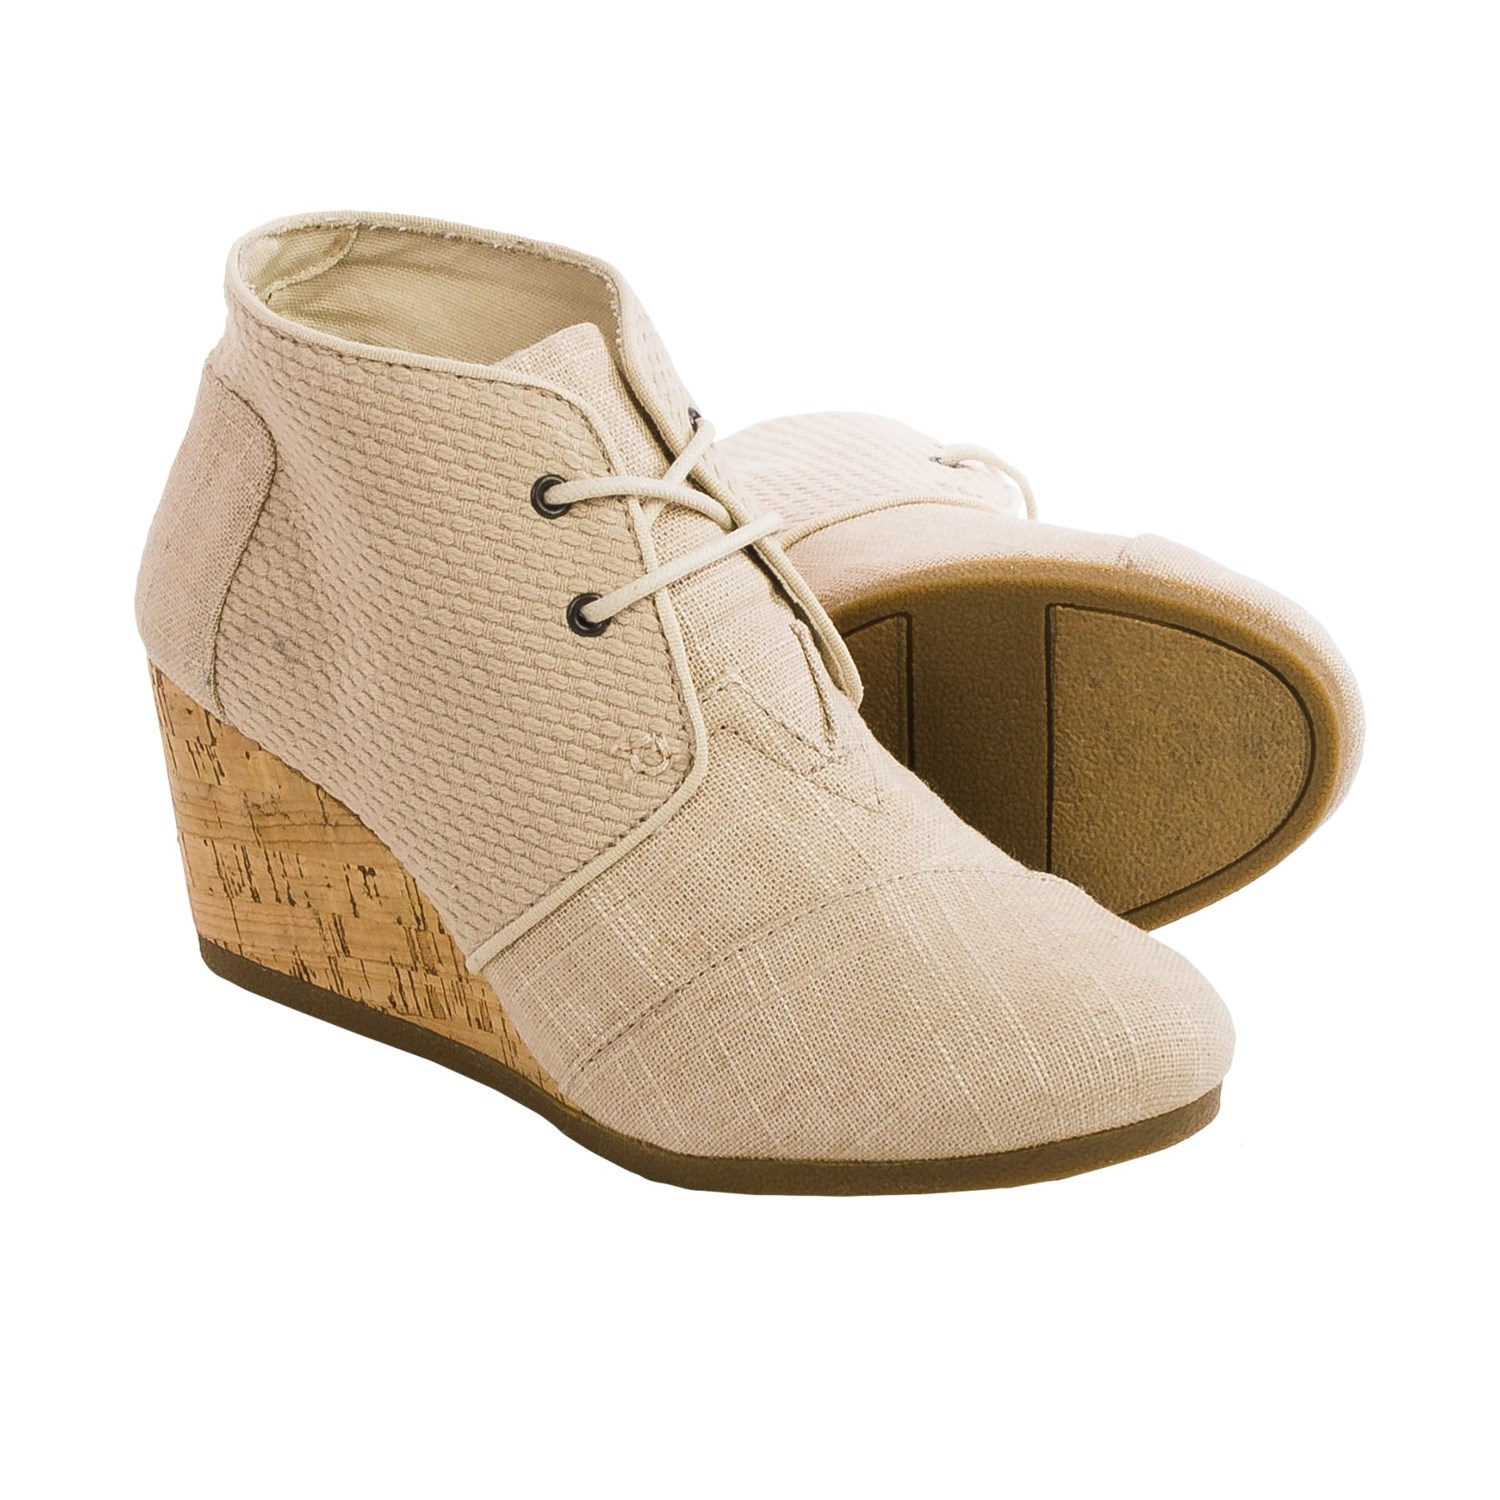 c787a062974 Toms burlap desert wedge ankle boots for women jpg 1500x1500 Toms burlap  wedge boots